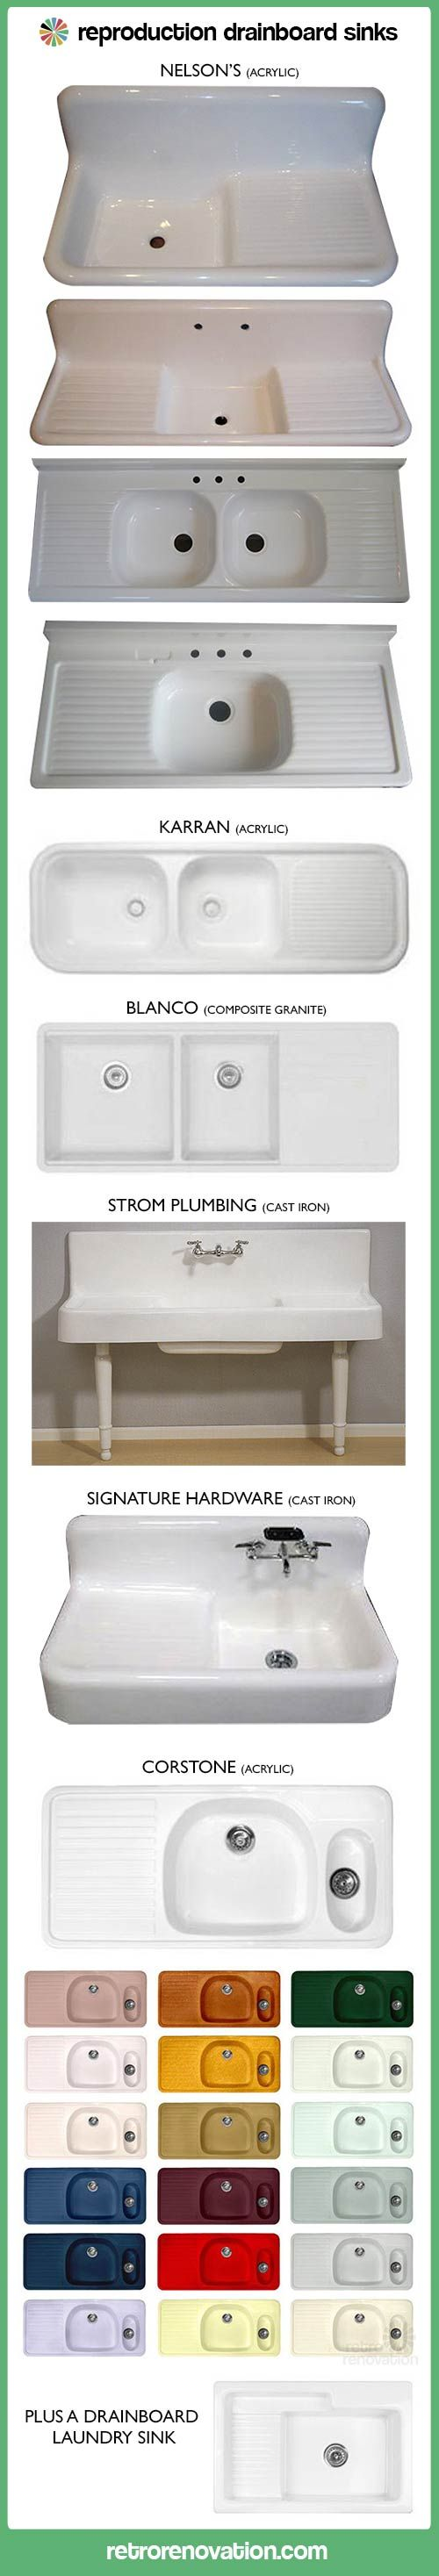 reproduction-drainboard-sinks                                                                                                                                                                                 More